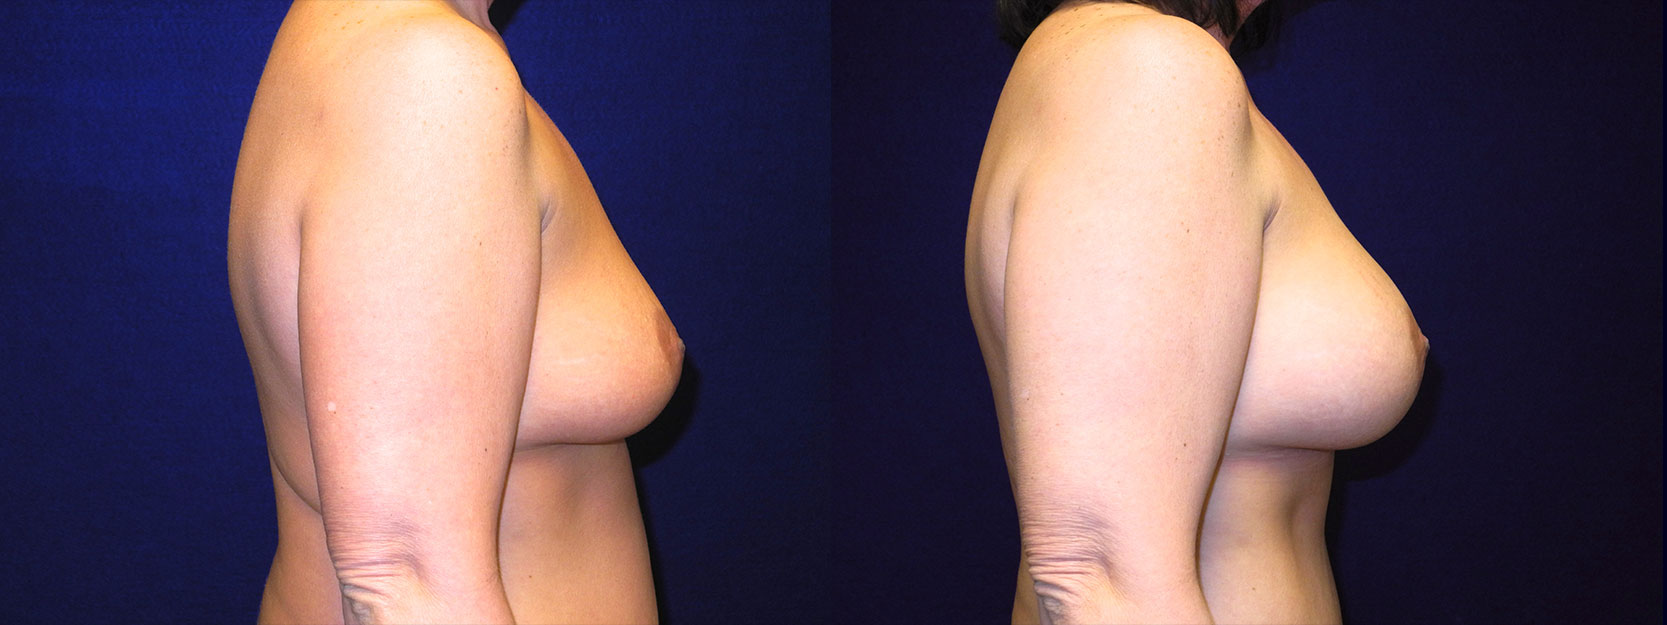 Right Profile View - Breast Augmentation After Weight Loss